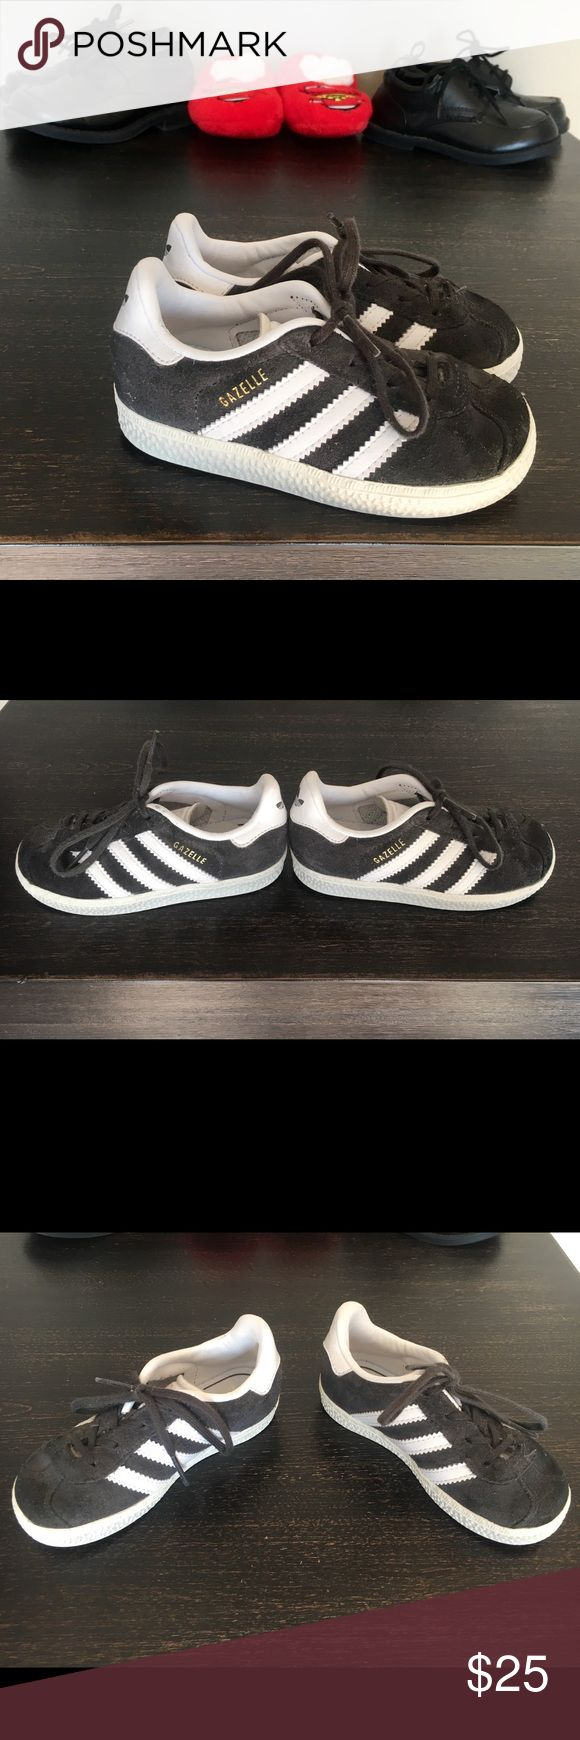 Adidas Gazelle (sz 11 Todd) So cute! Bundle with other shoes for more great deals adidas Shoes Sneakers